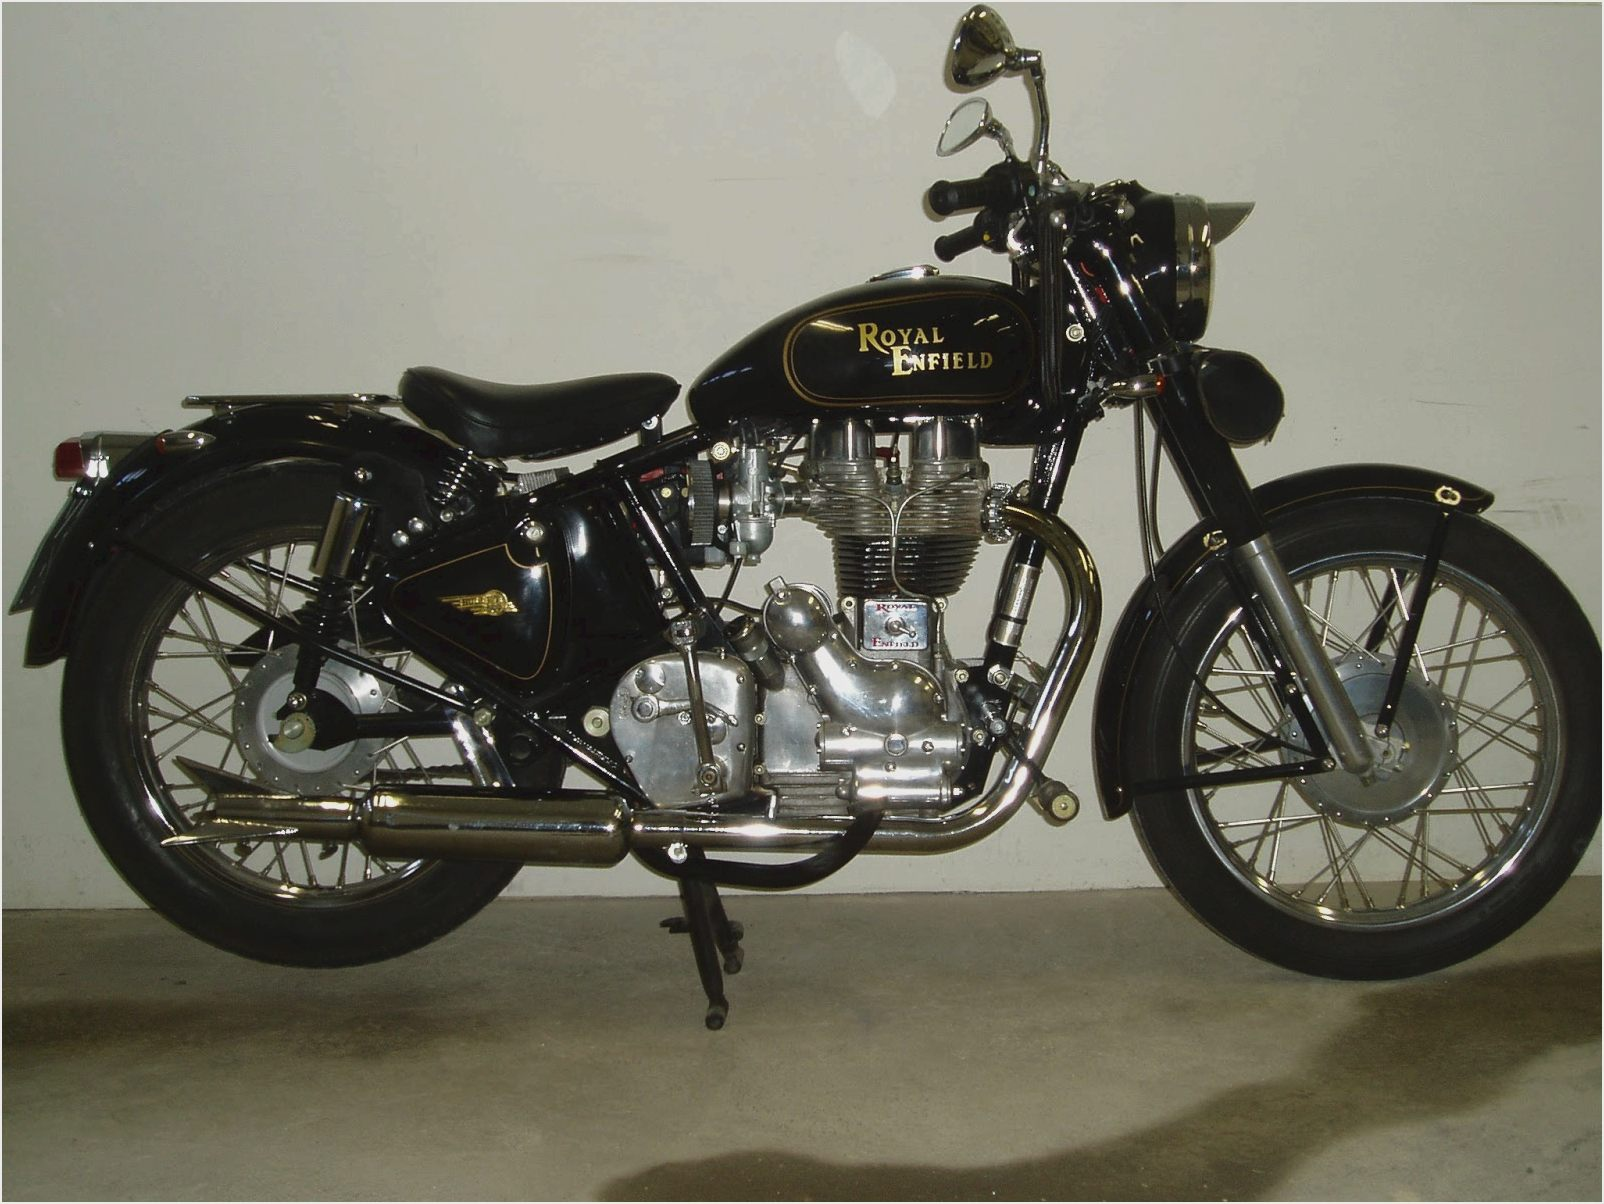 2011 Enfield Bullet Classic 500 #1